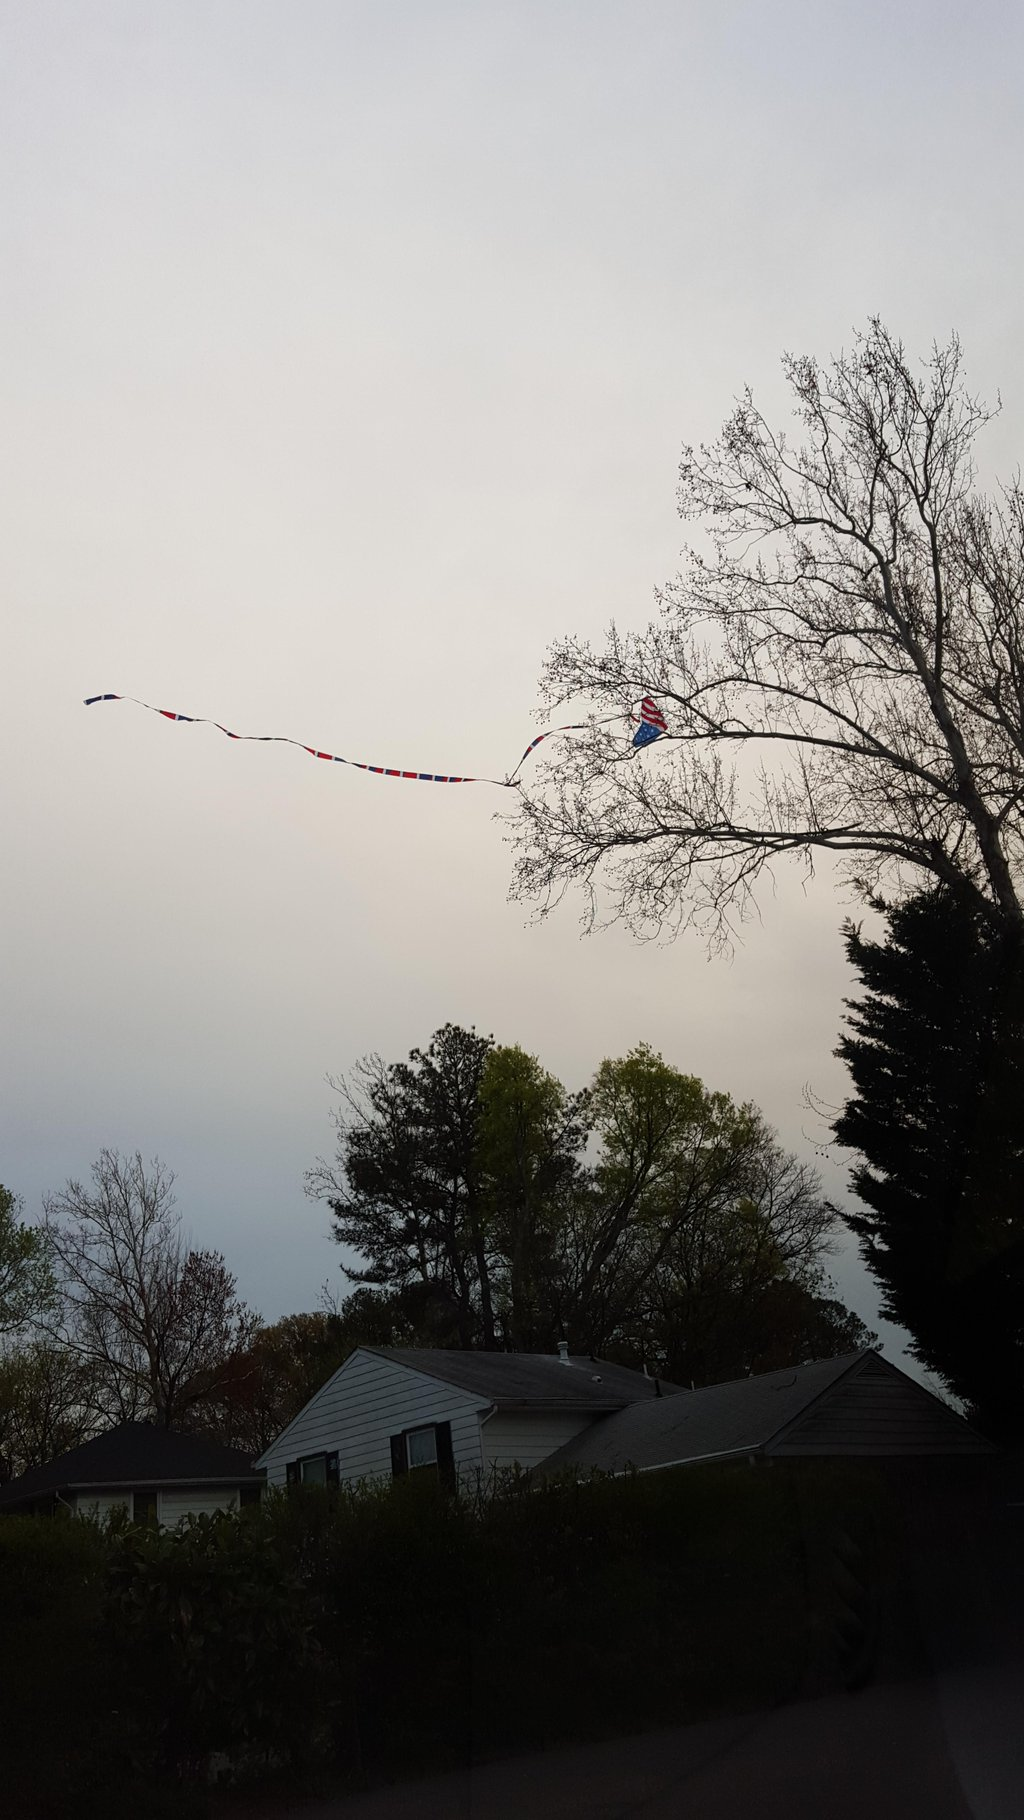 Kite flying was fun until…